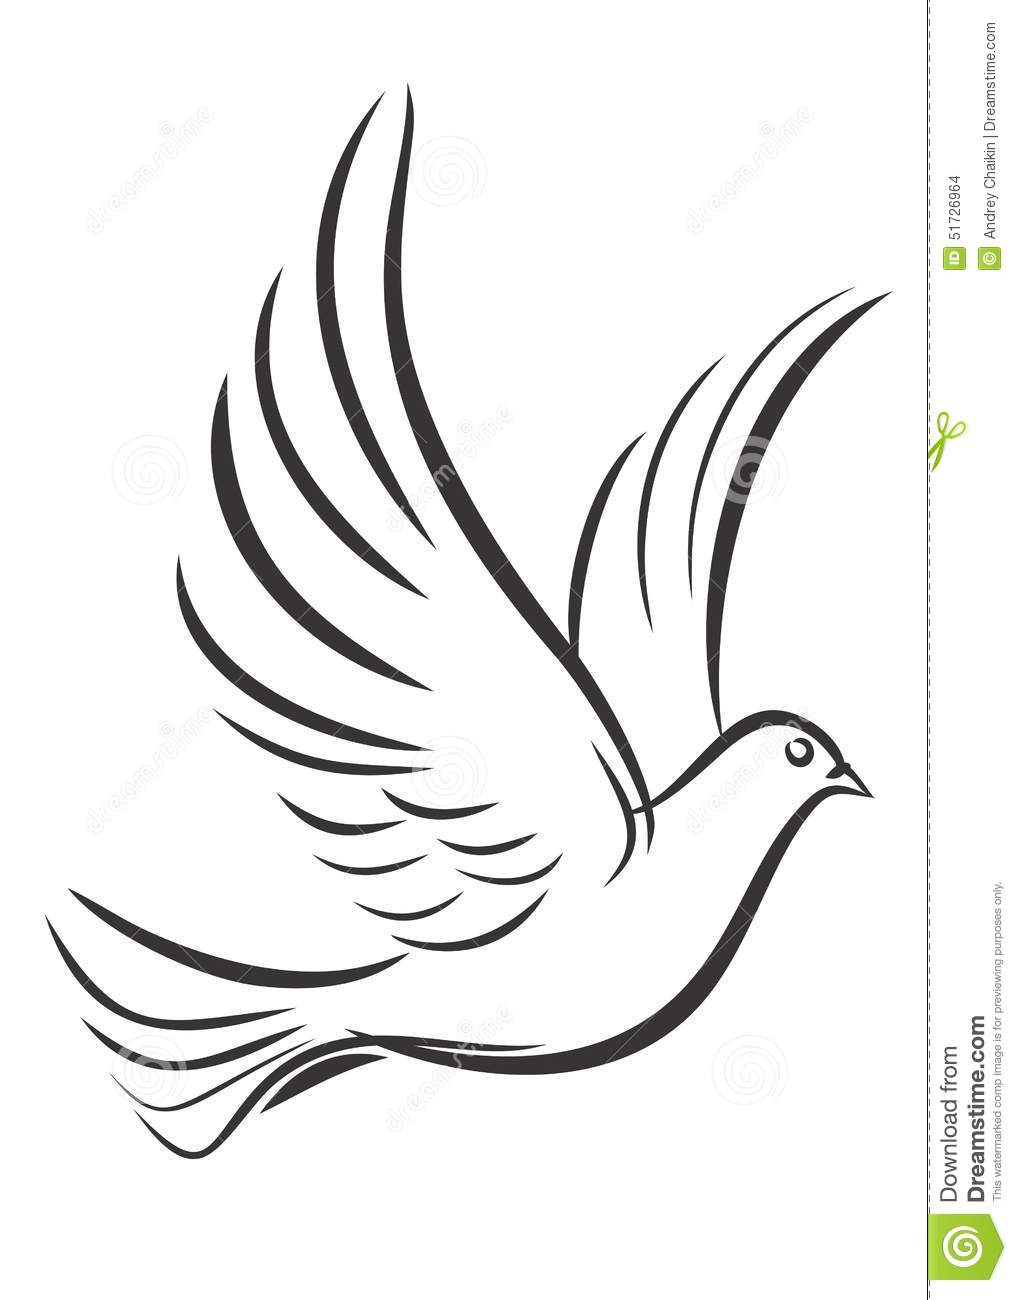 Pigeon In Flight. Stock Vector - Image: 51726964